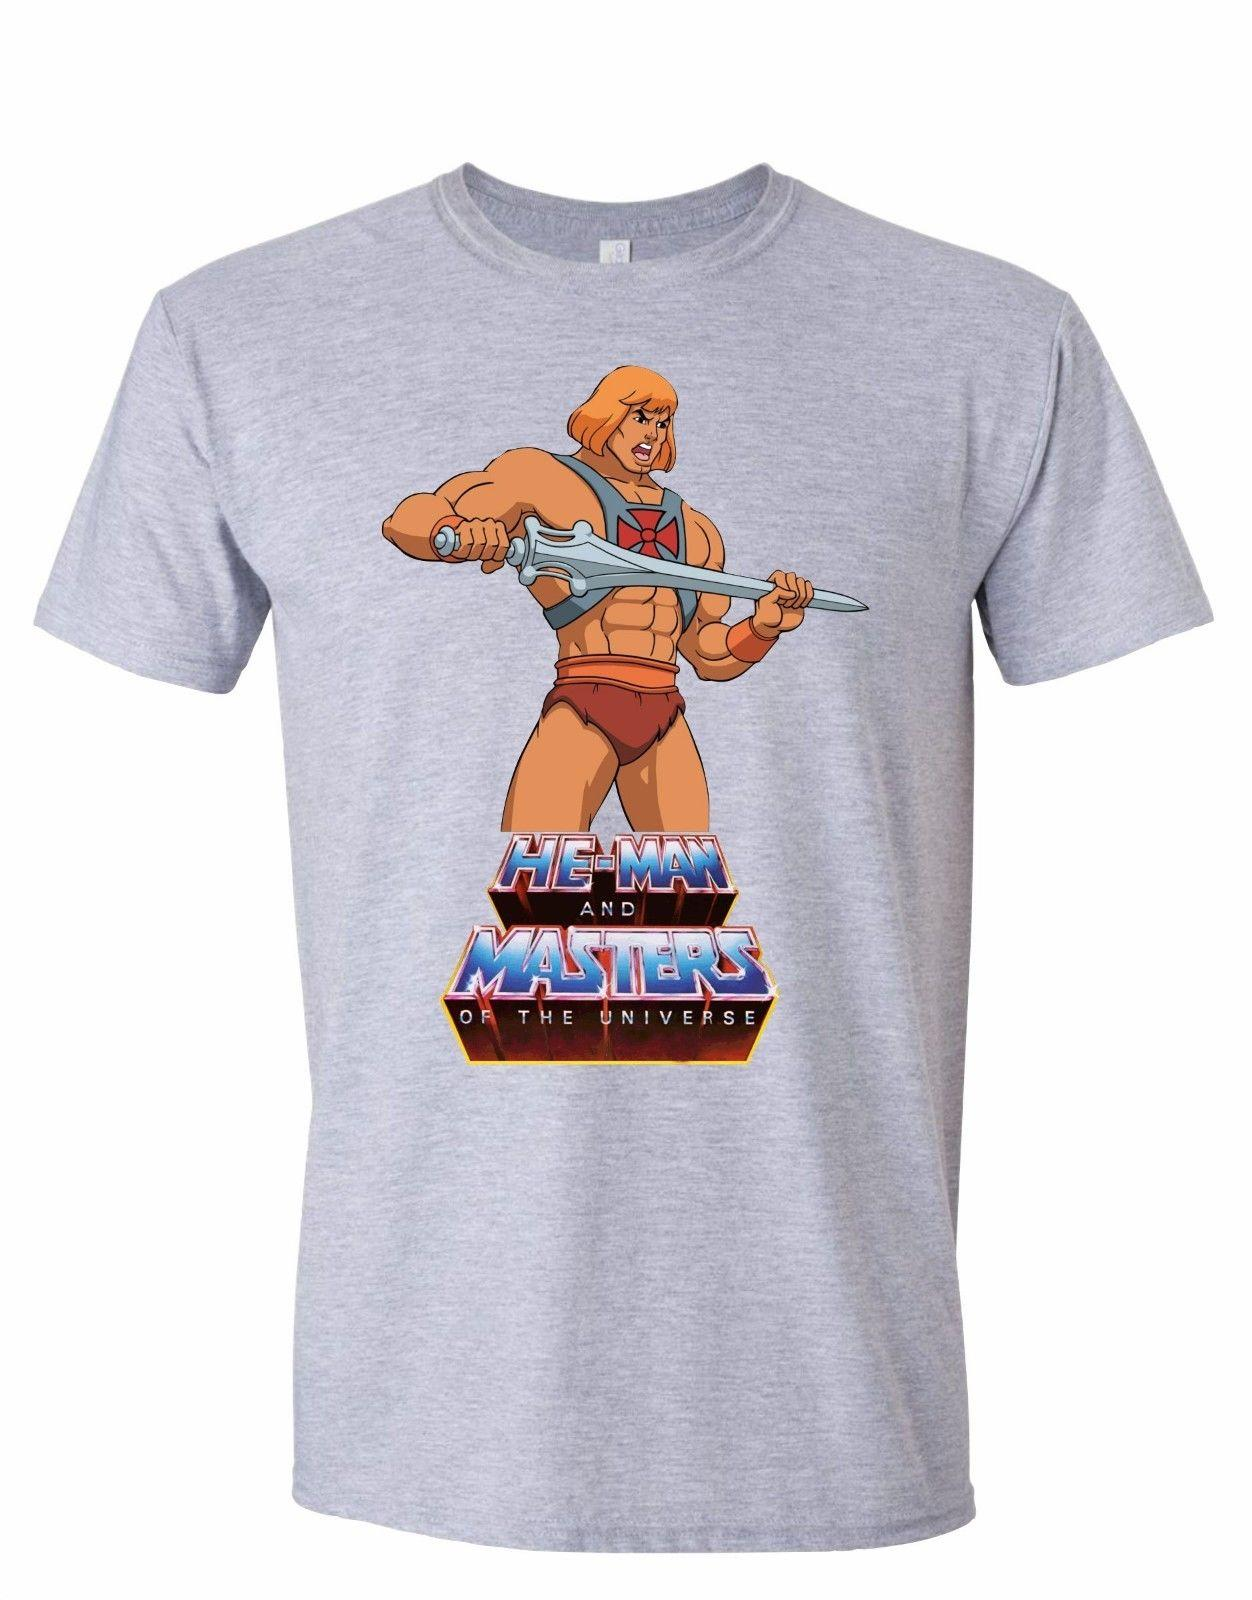 65d658f6a He Man Masters Of The Universe Retro T Shirt Mens Top 80'S Cartoon Classic  Grey Funny Casual Tee Themed Shirts Latest T Shirts Design From Fatcuckoo,  ...